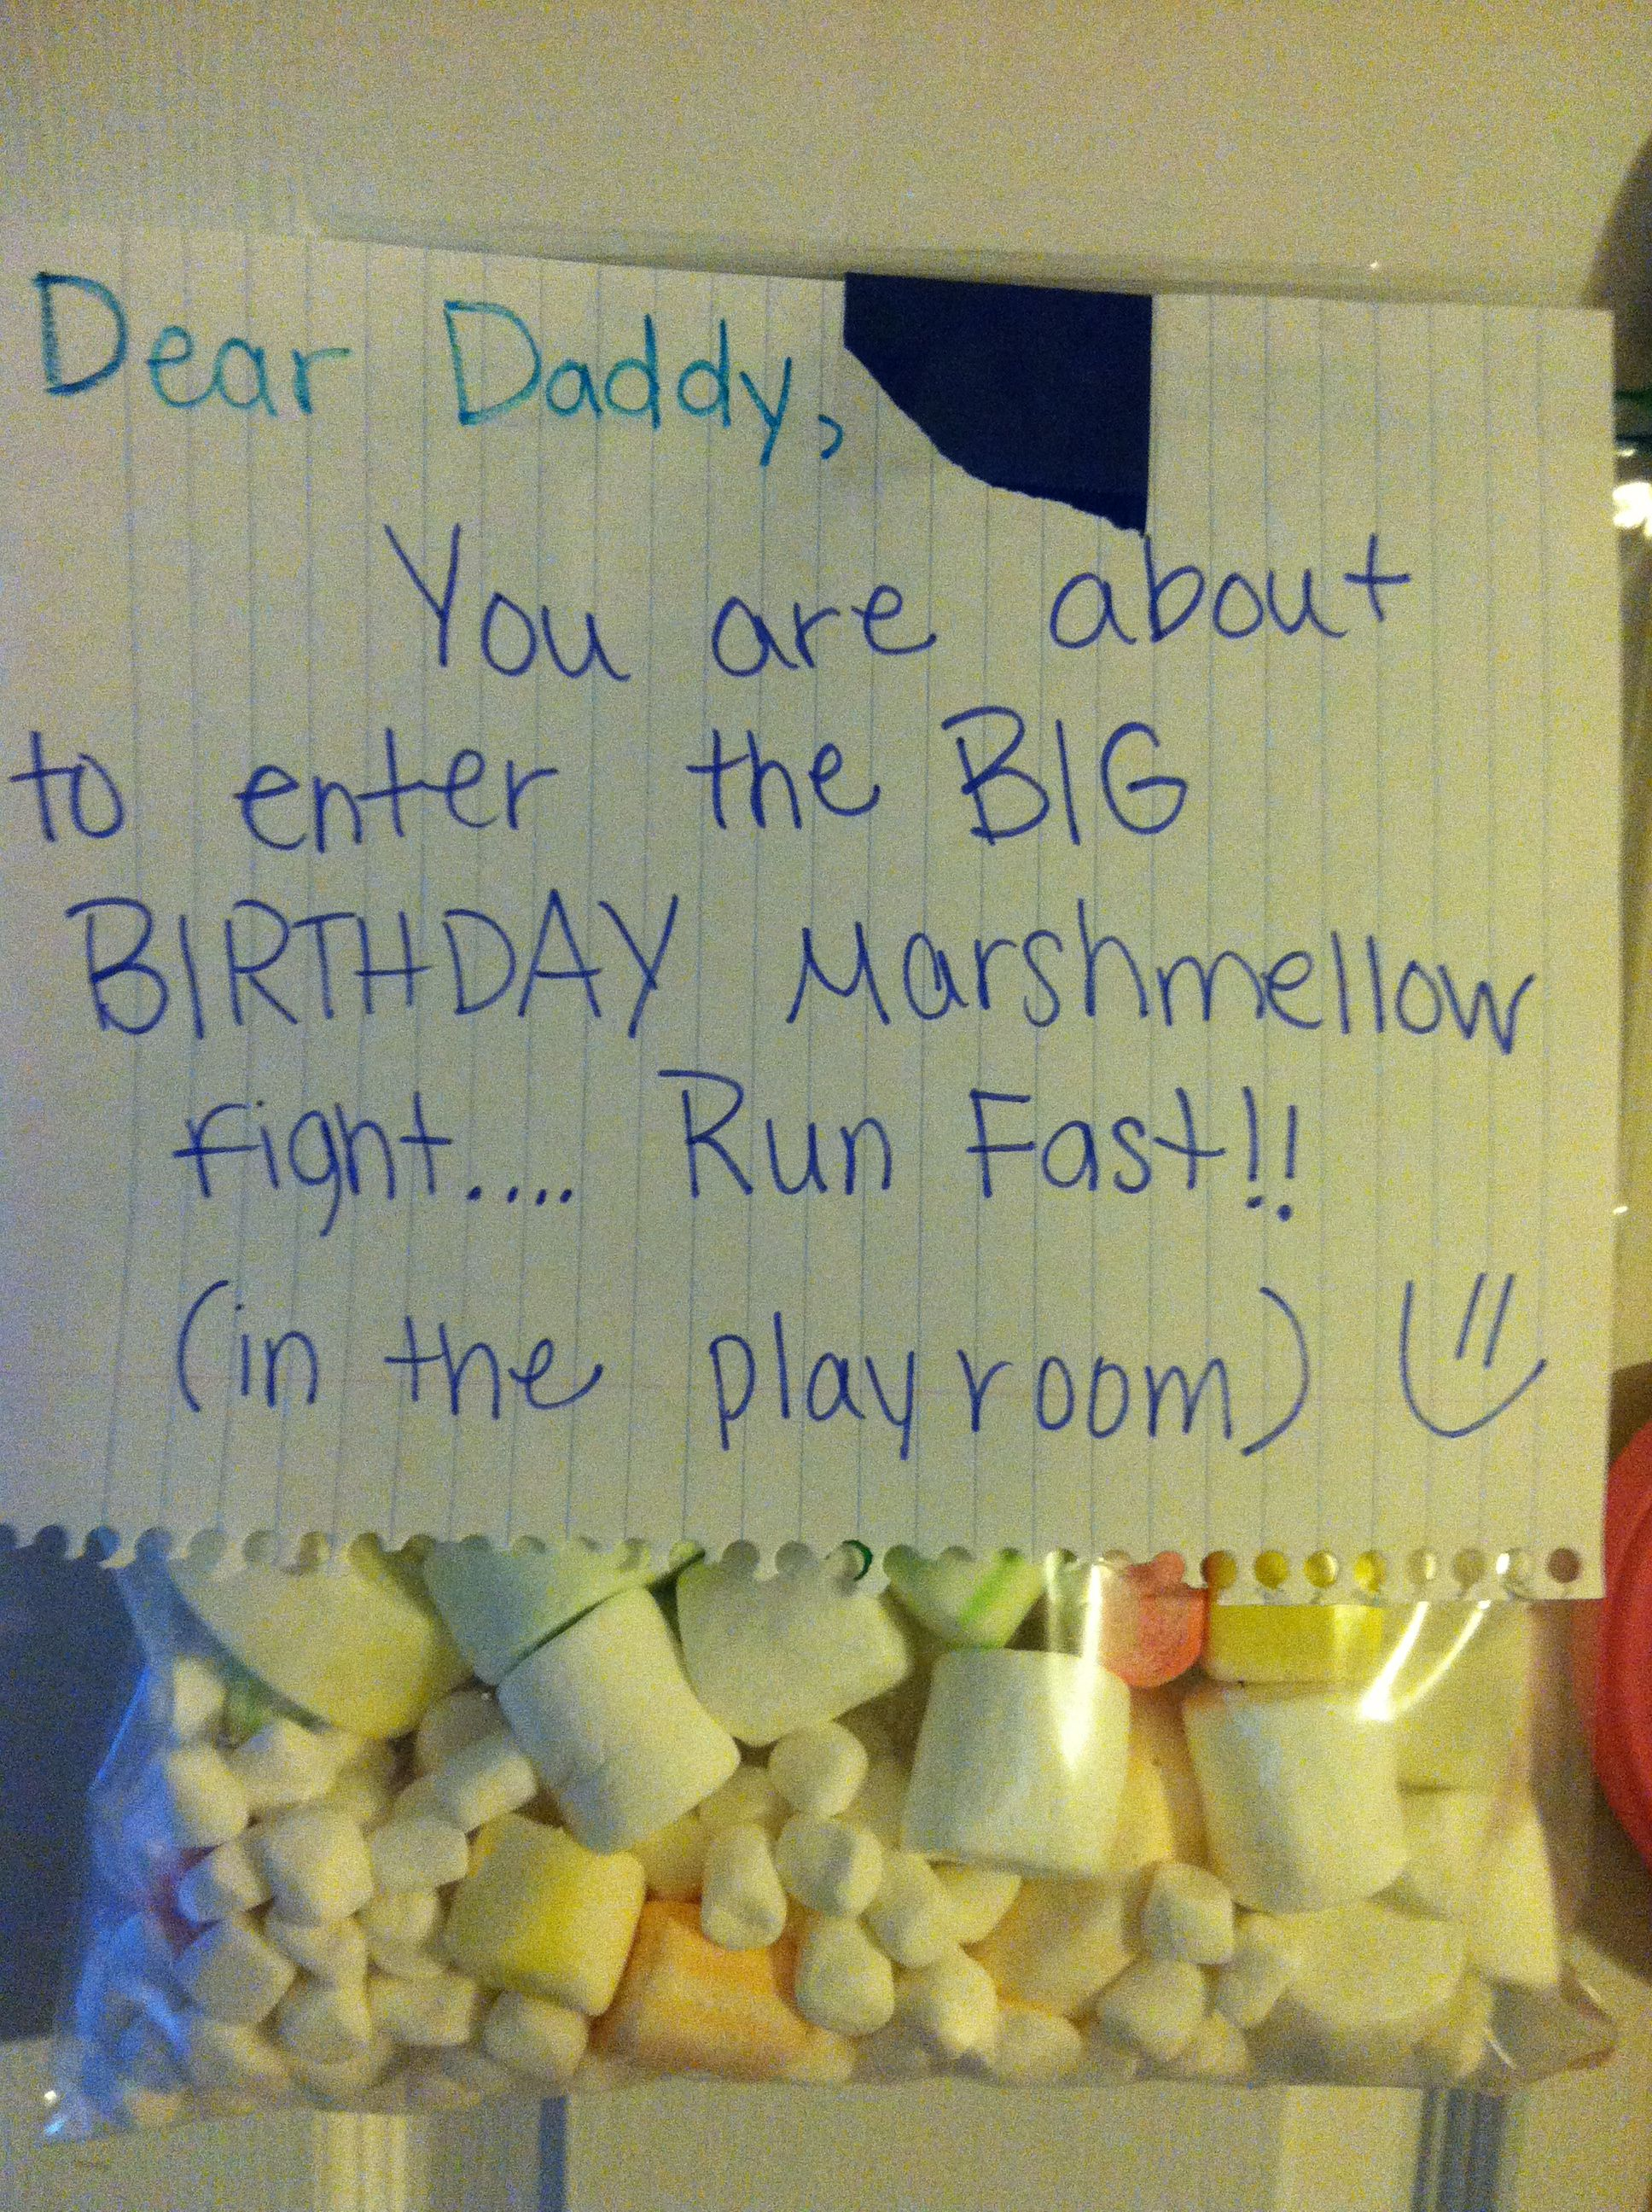 Not For Daddy But I Could Do Something Like This And Be Silly With My Boyfriend